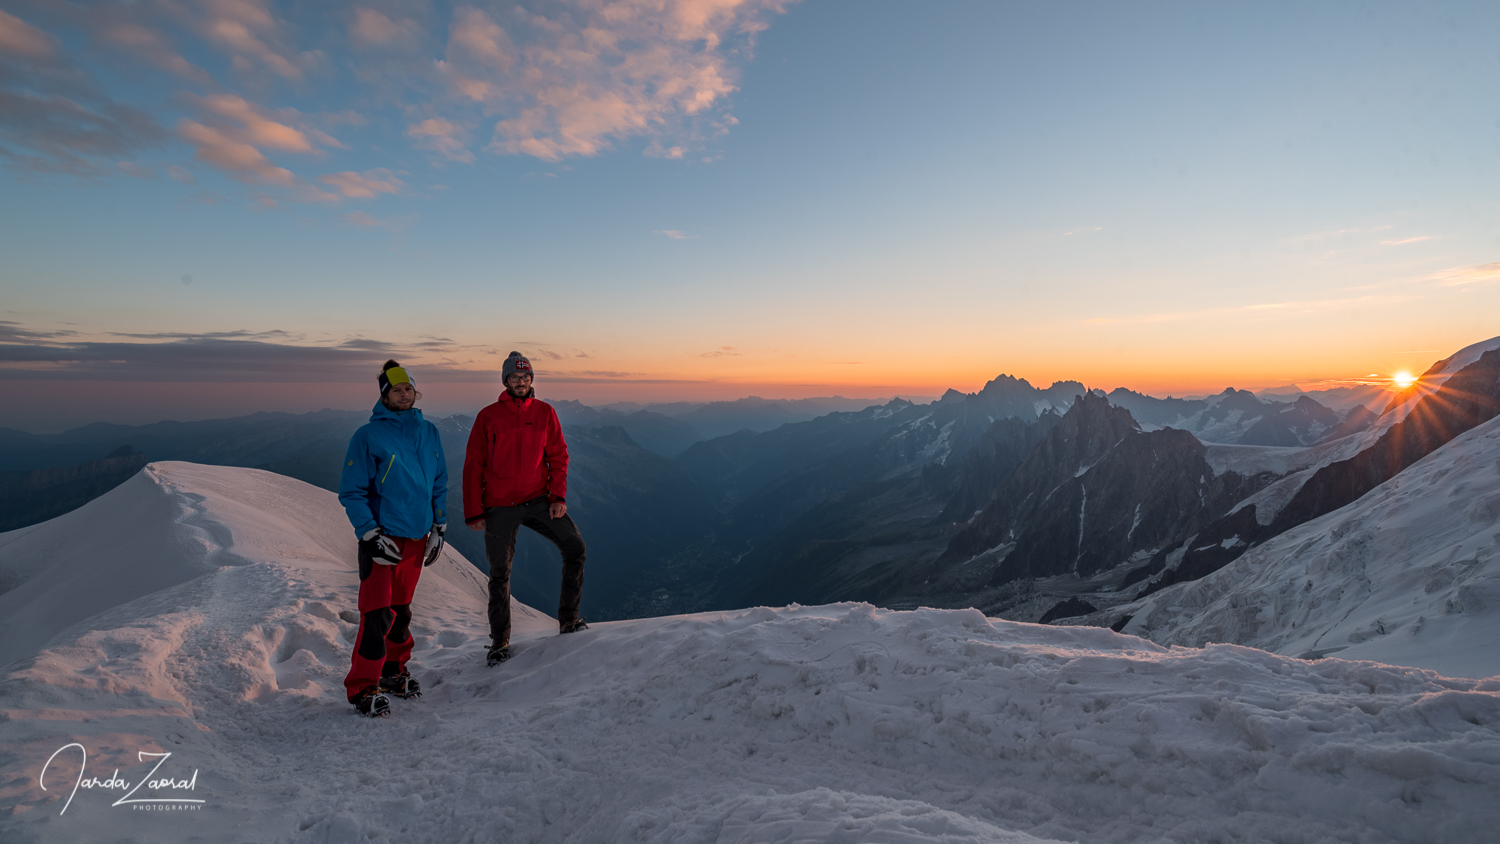 Sunrise at Gouter Hut